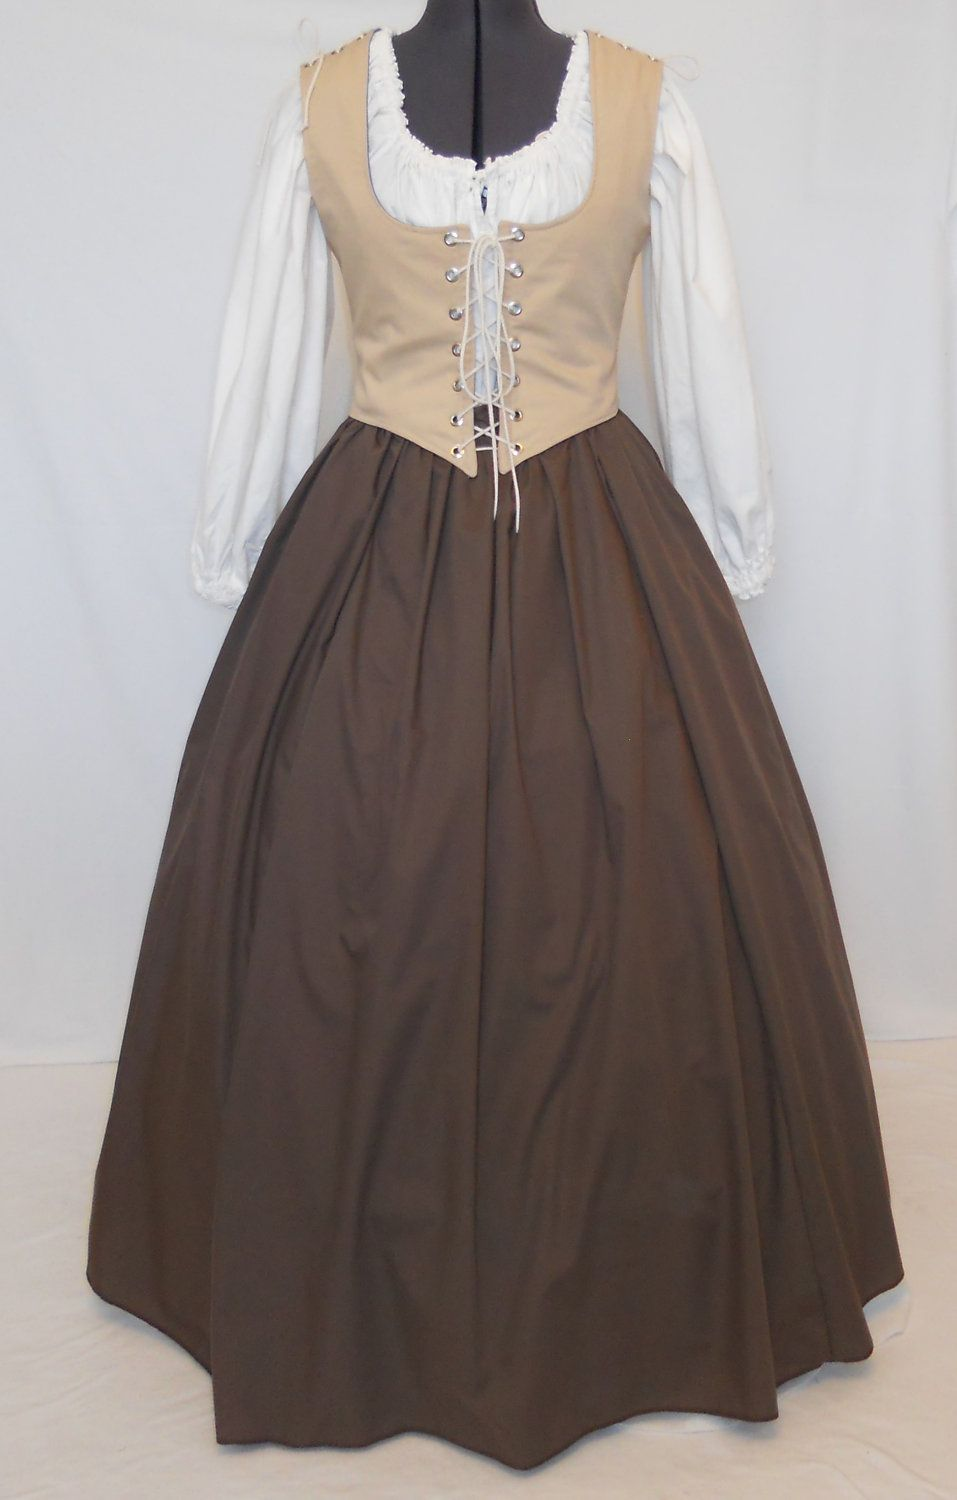 fe213cec6a1 Renaissance Dress Pirate Tavern Wench Peasant by MidnightsMeadow Renaissance  Dresses